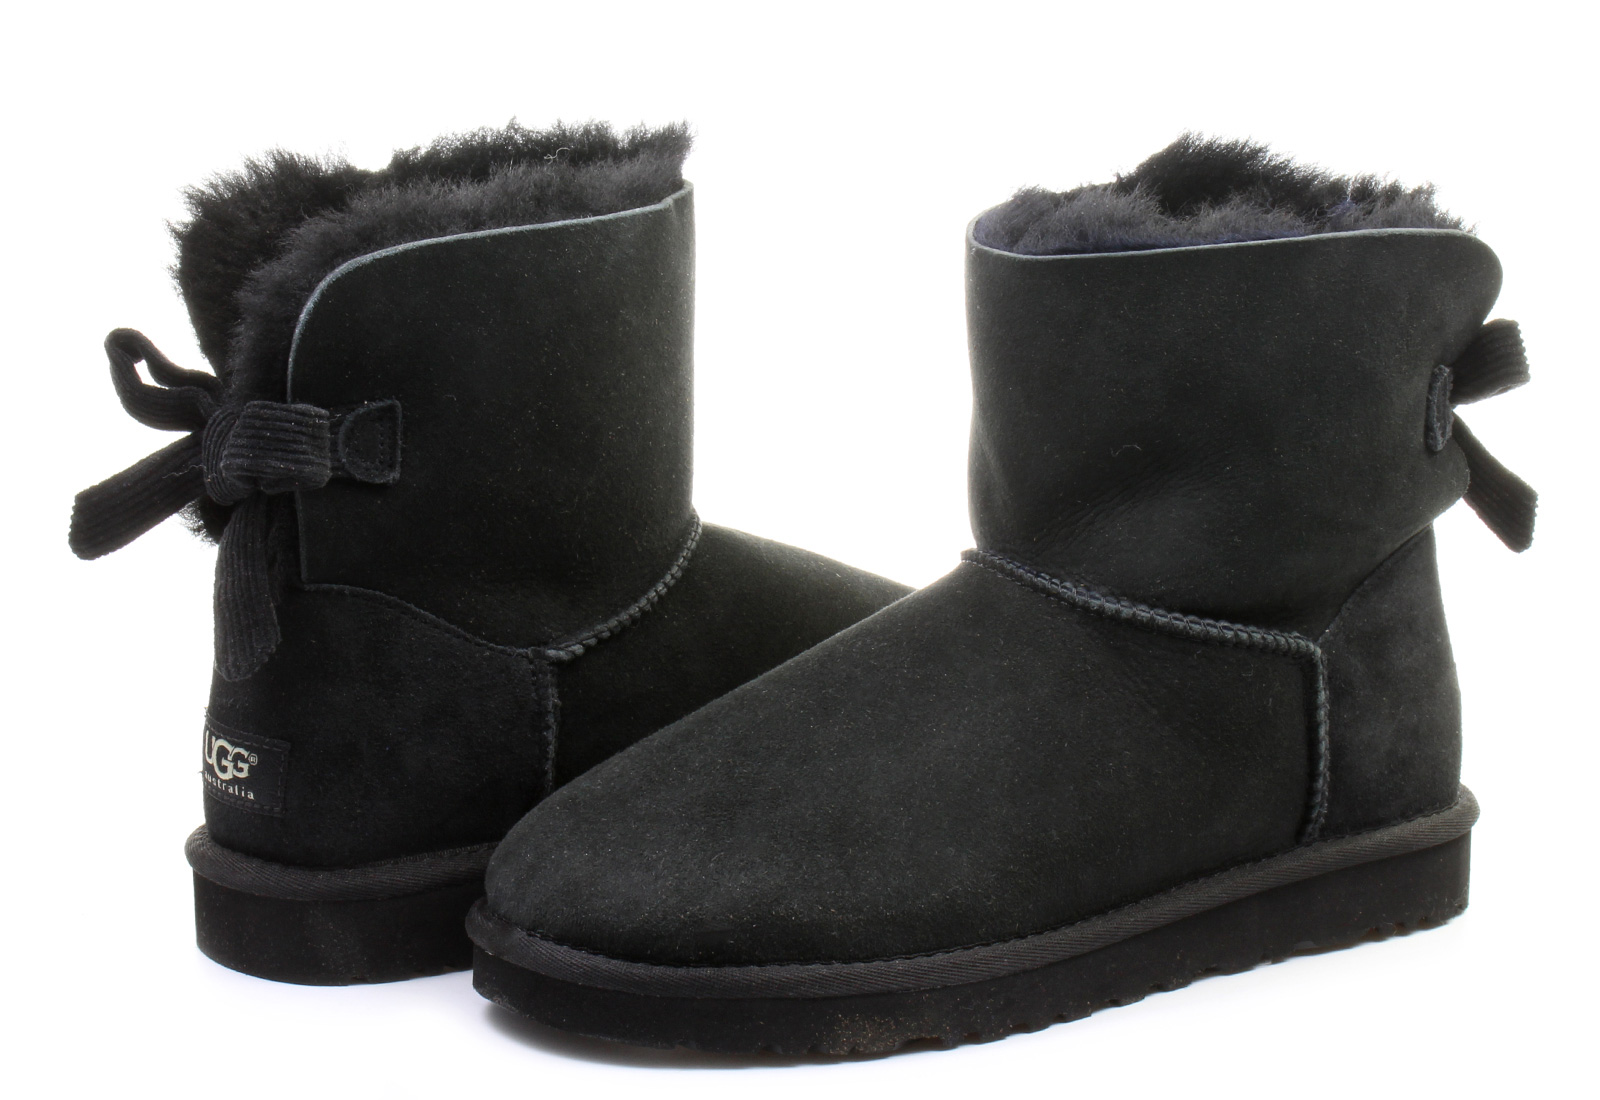 2e89cd0c0ae Black Ugg Slippers Office - cheap watches mgc-gas.com